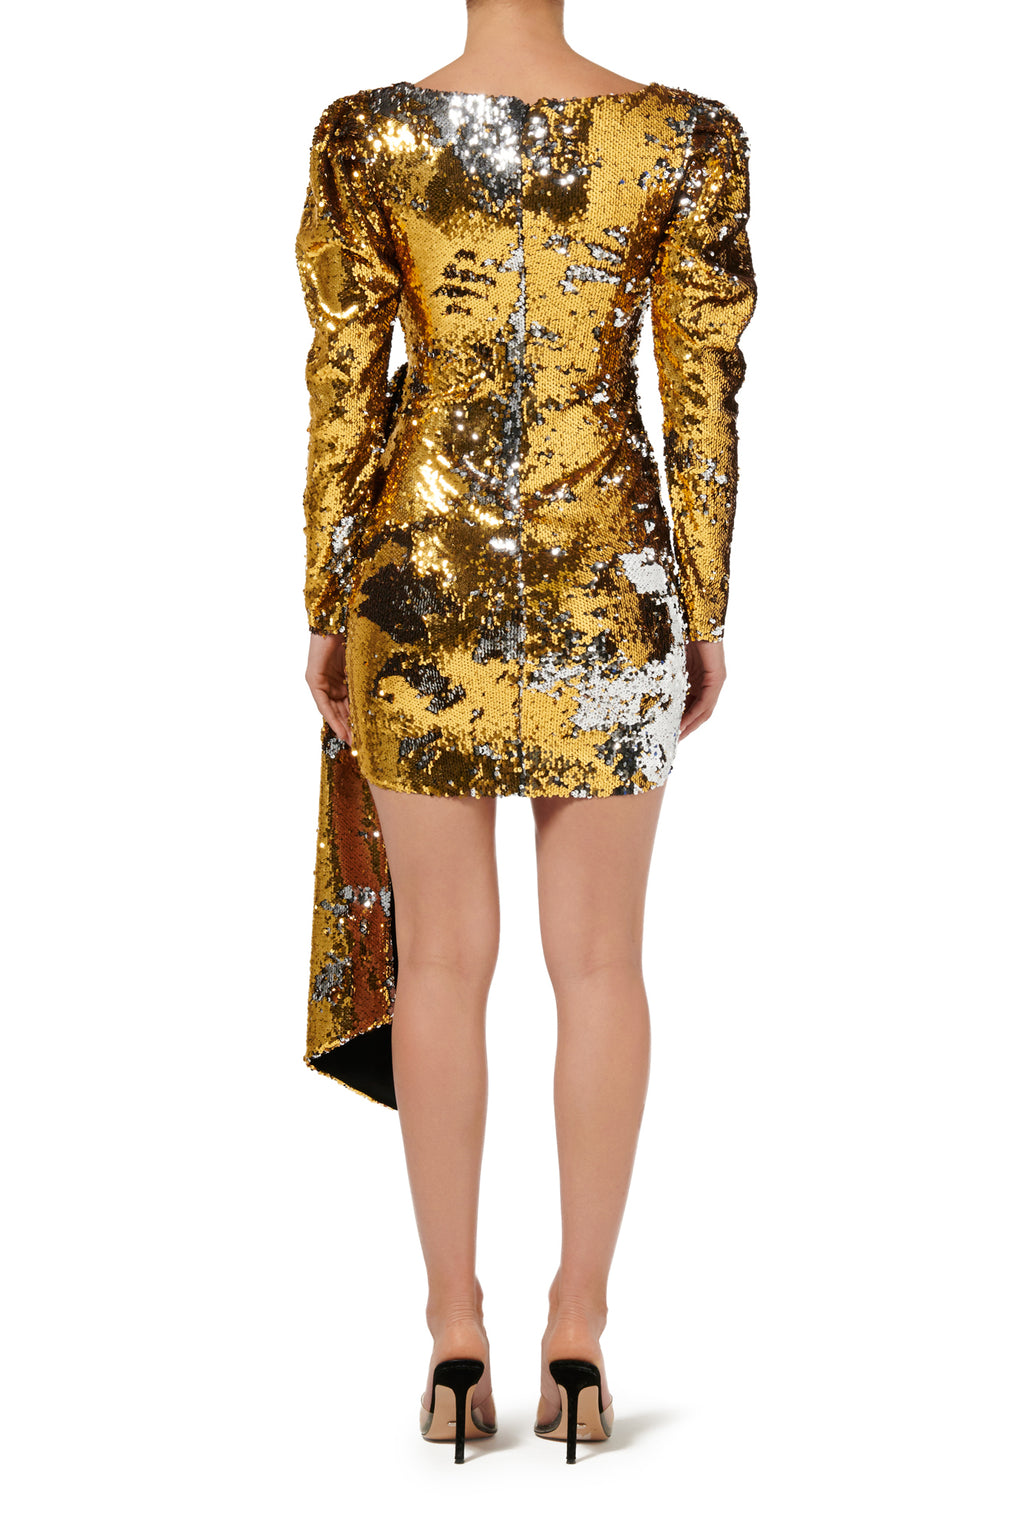 Fashion Rebellion Sequin Mini Dress - Gold